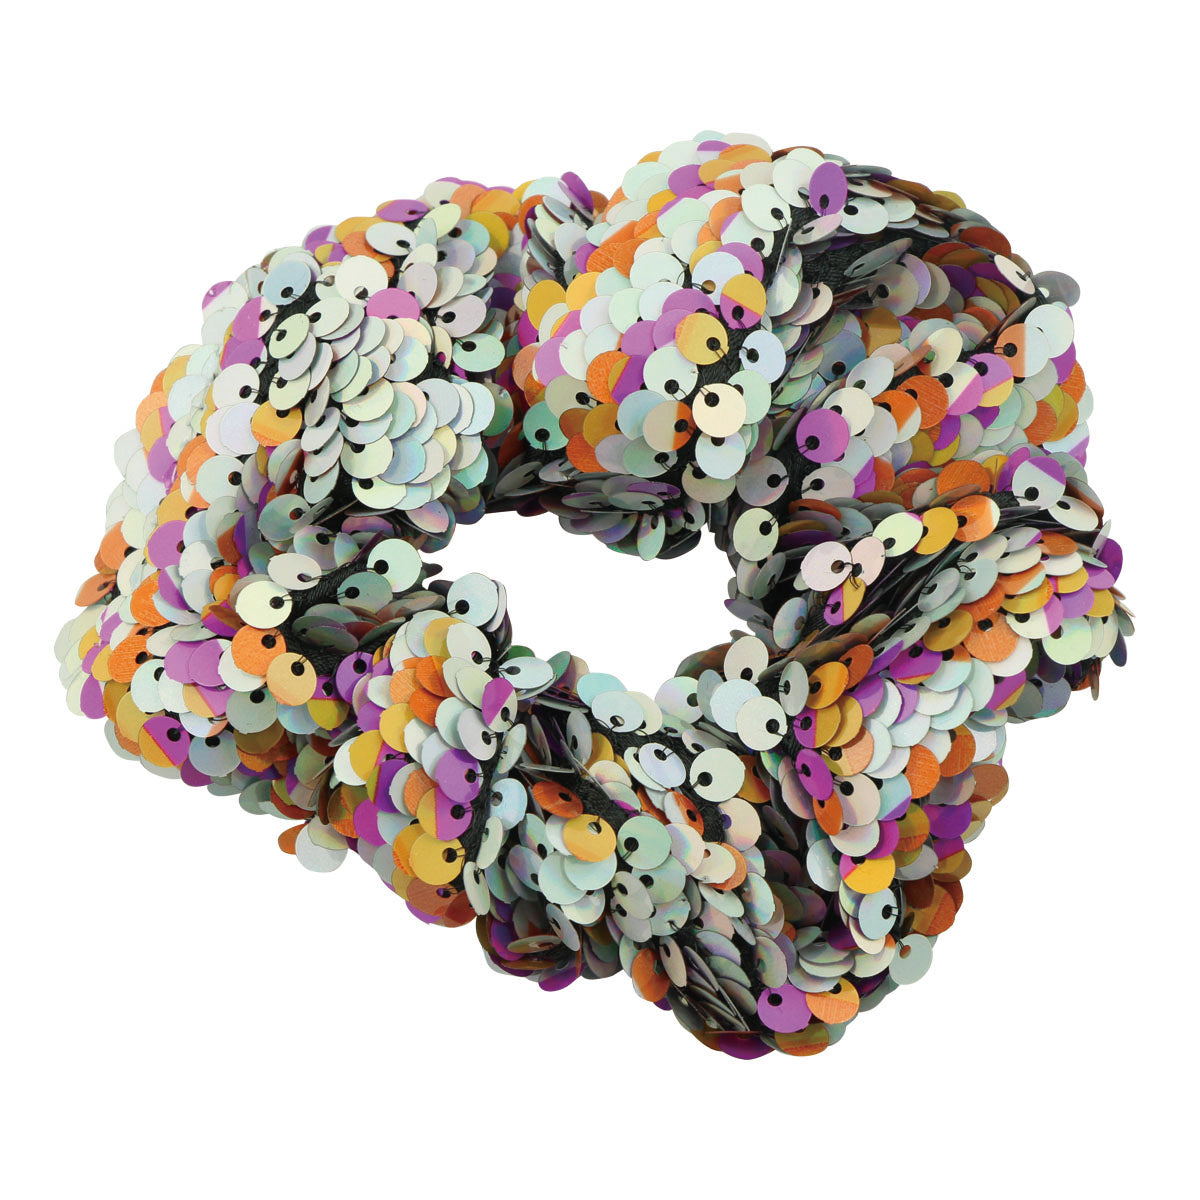 Sparkly Glitter Sequin Hair Scrunchies Ponytail Holder Elastic Hair Bands Hair Ties Hair Accessories Girls Reversible Sequin Scrunchies Women Teens Glitter Scrunchies 5525